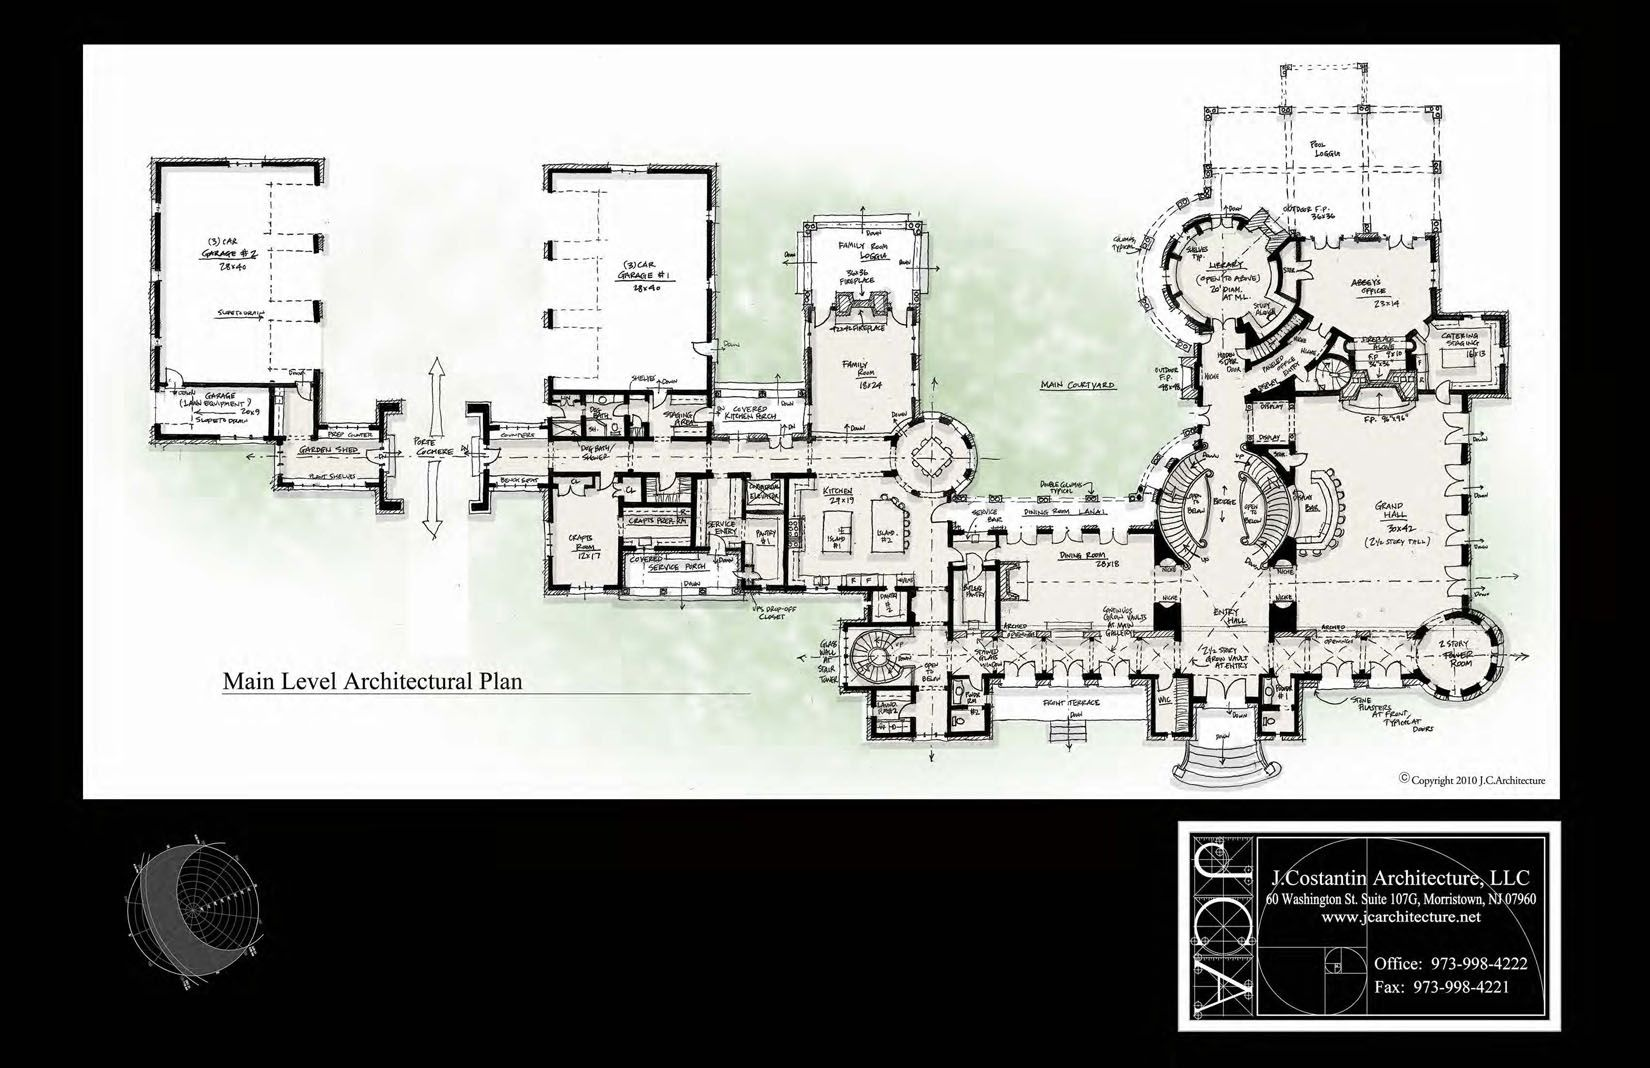 20 000 sq ft first floor J Costantin Architecture Colts Neck